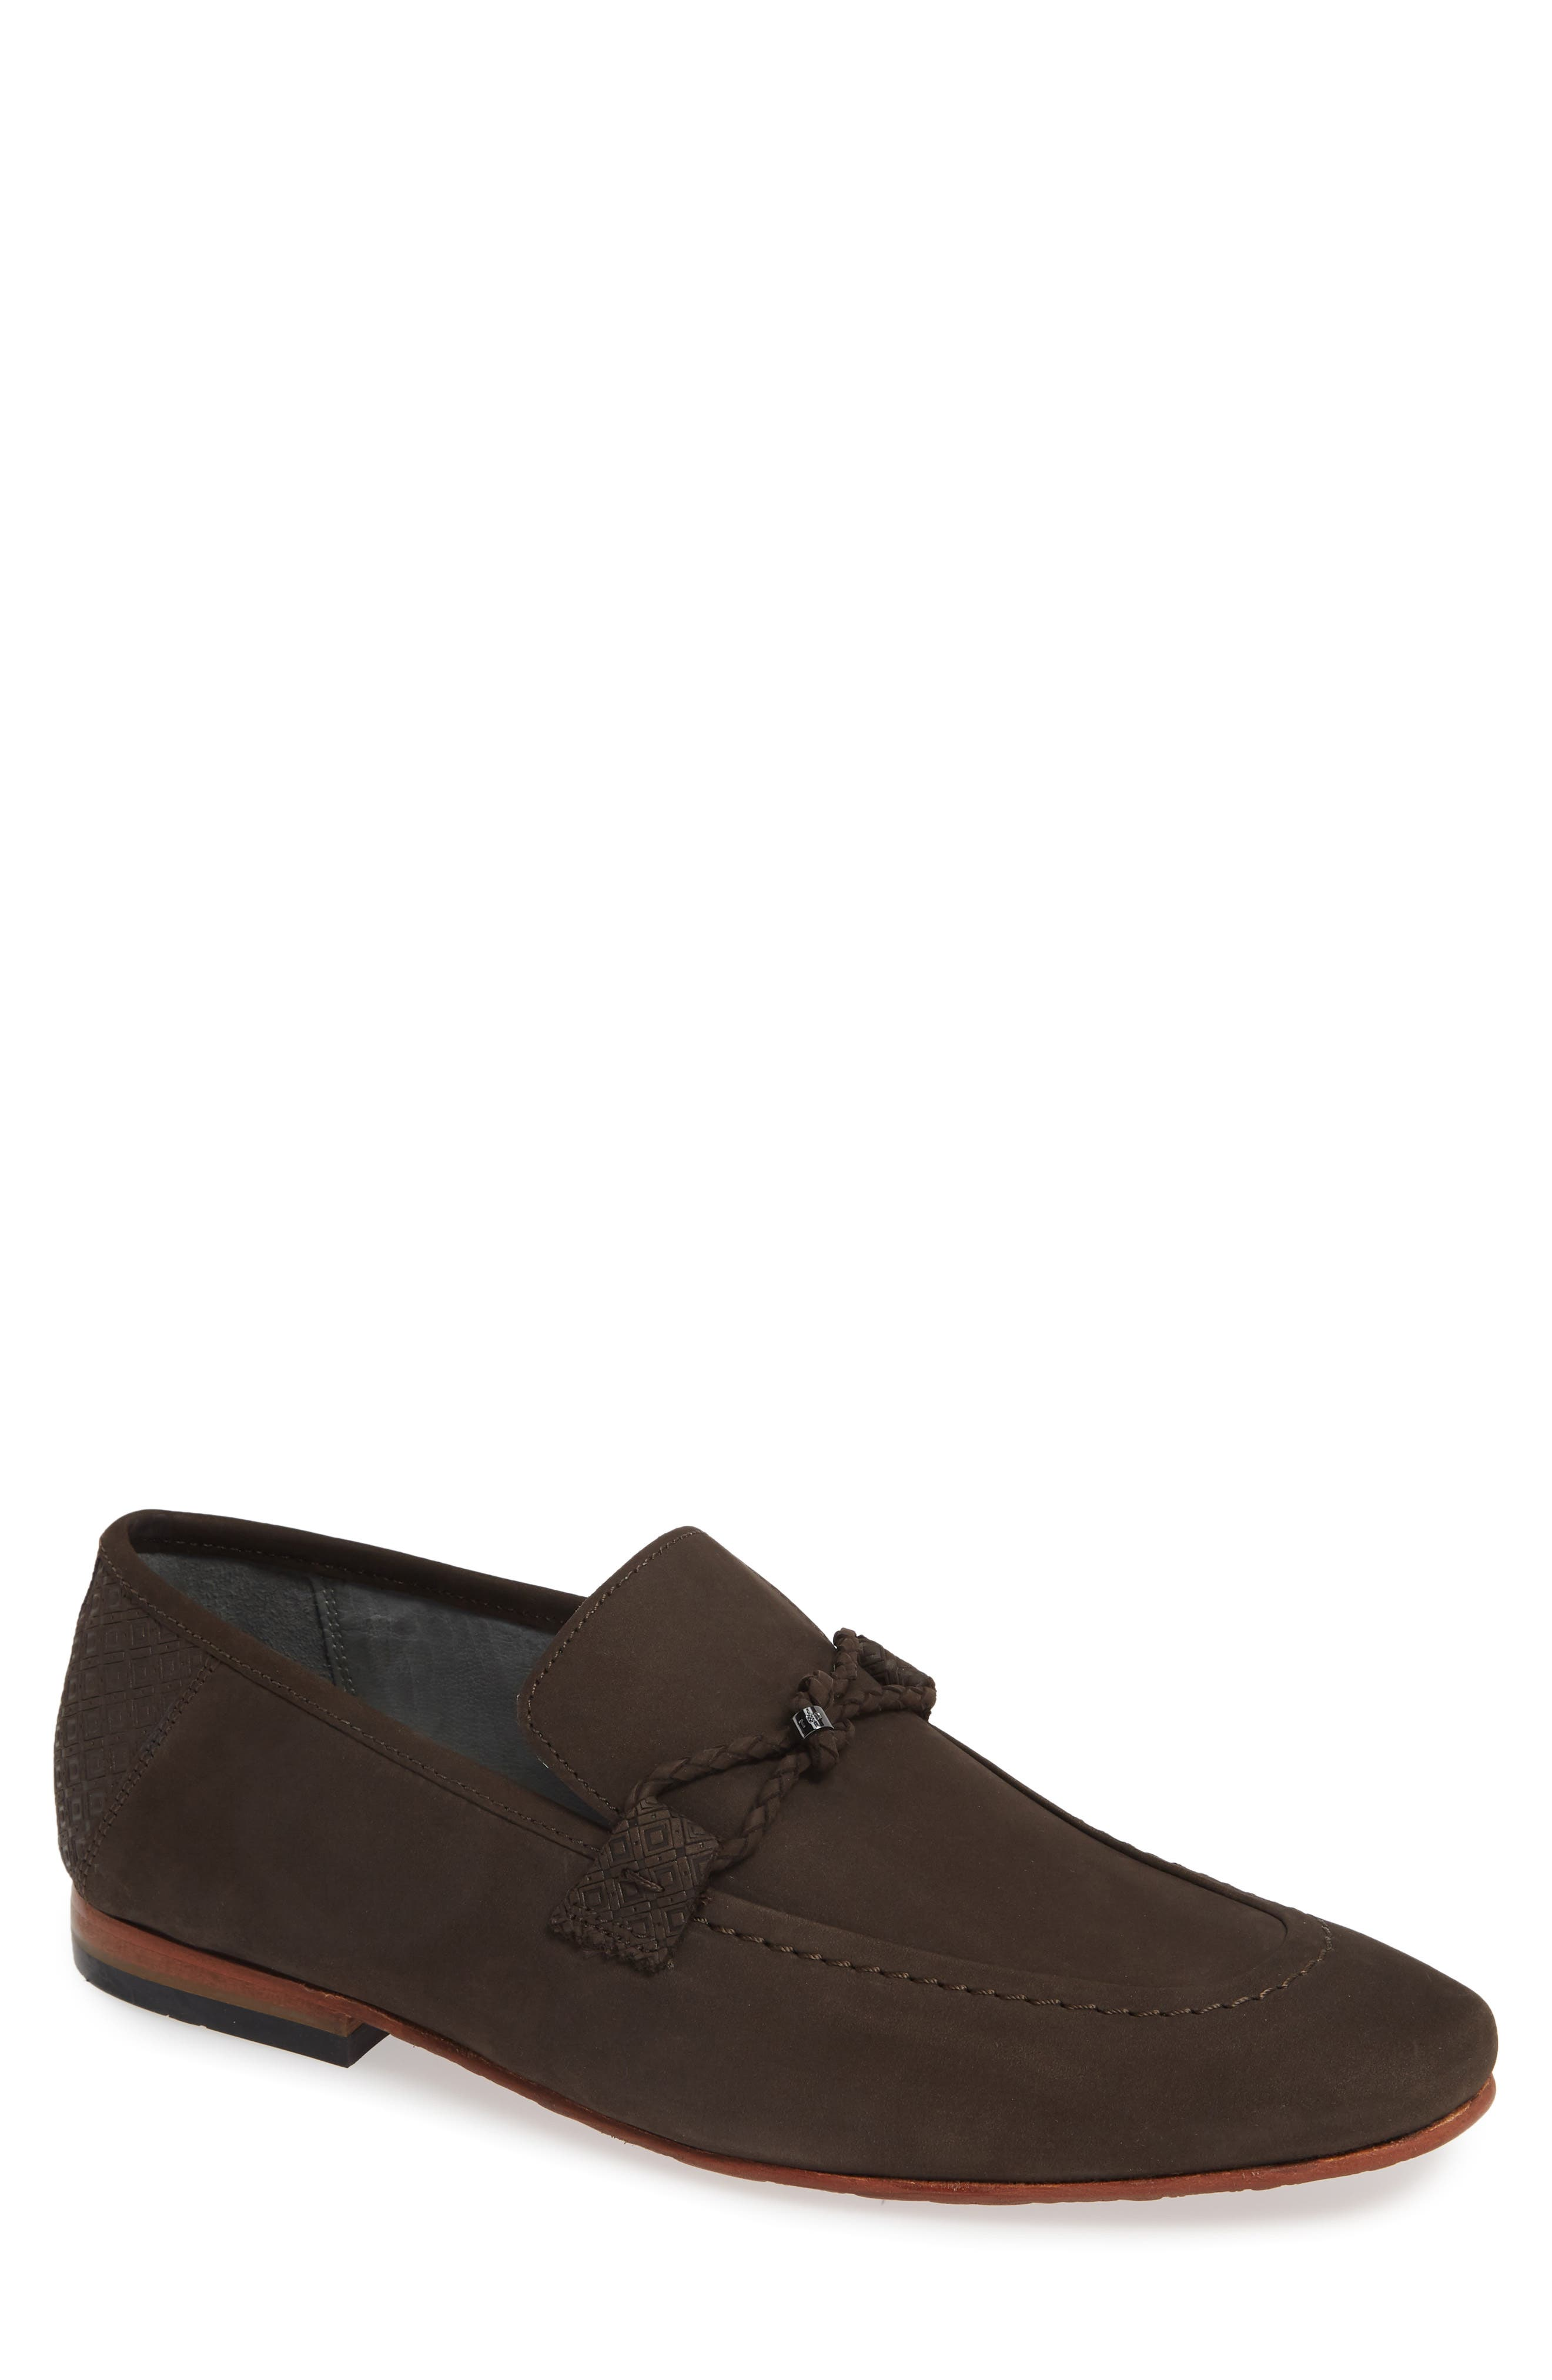 Ted Baker London Daveon Driving Loafer, Brown